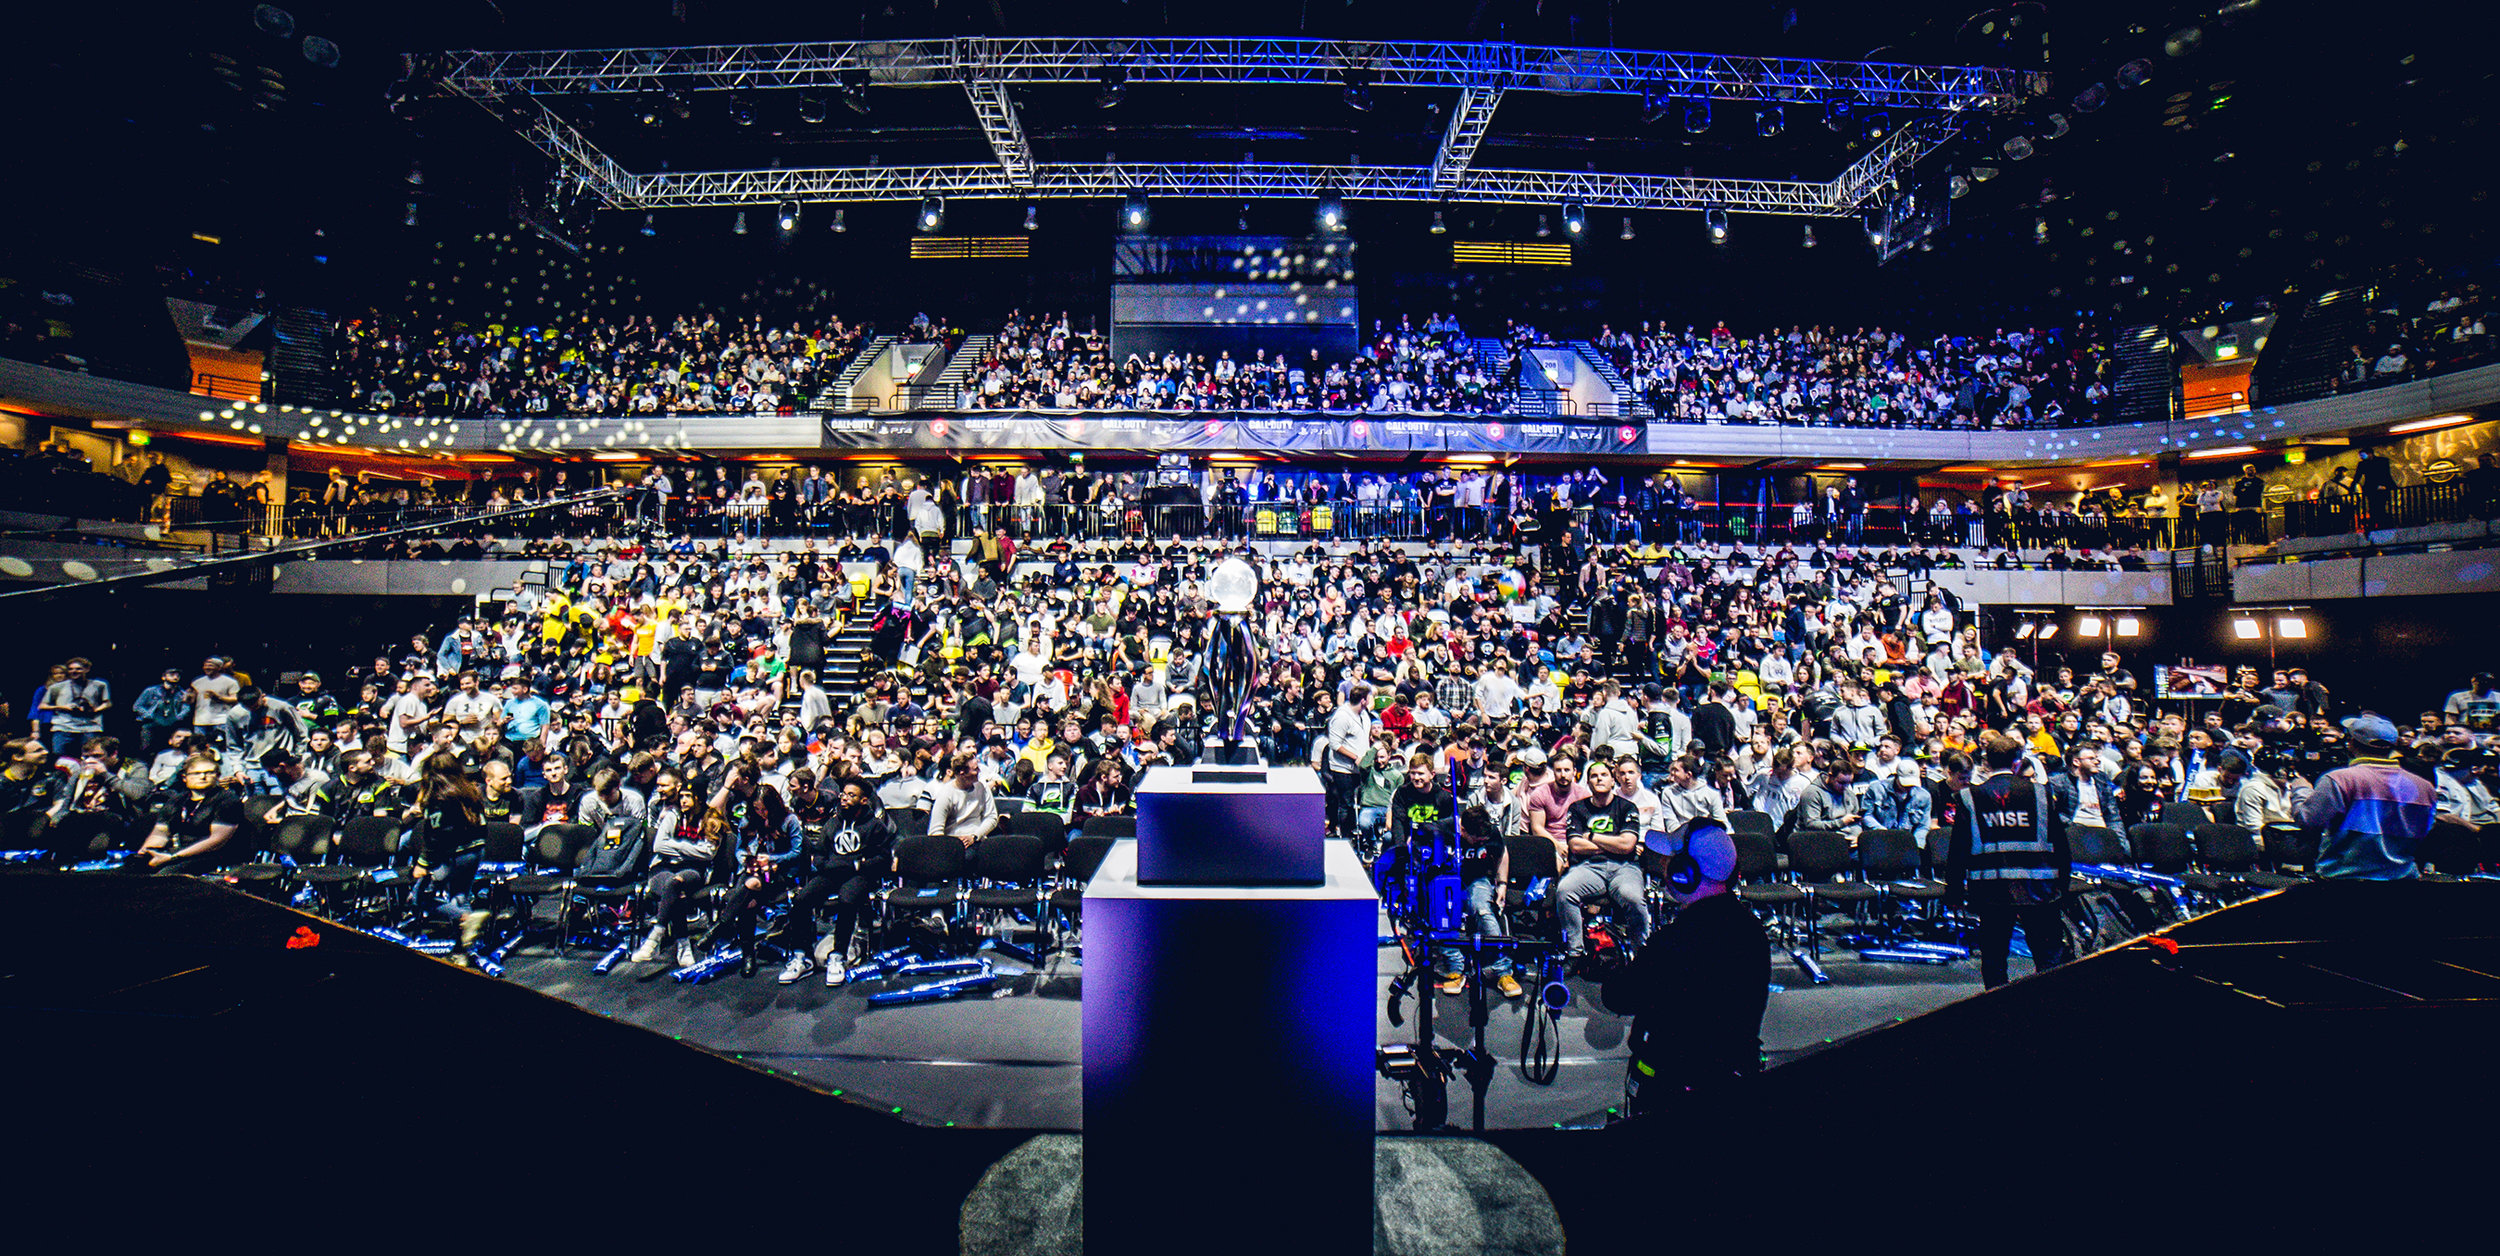 LONDON, ENGLAND - May 5, 2019: Call of Duty World League crowd at Copper Box Arena on May 3, 2019 in London, England. (Photo by Joao Ferreira/ESPAT Media)